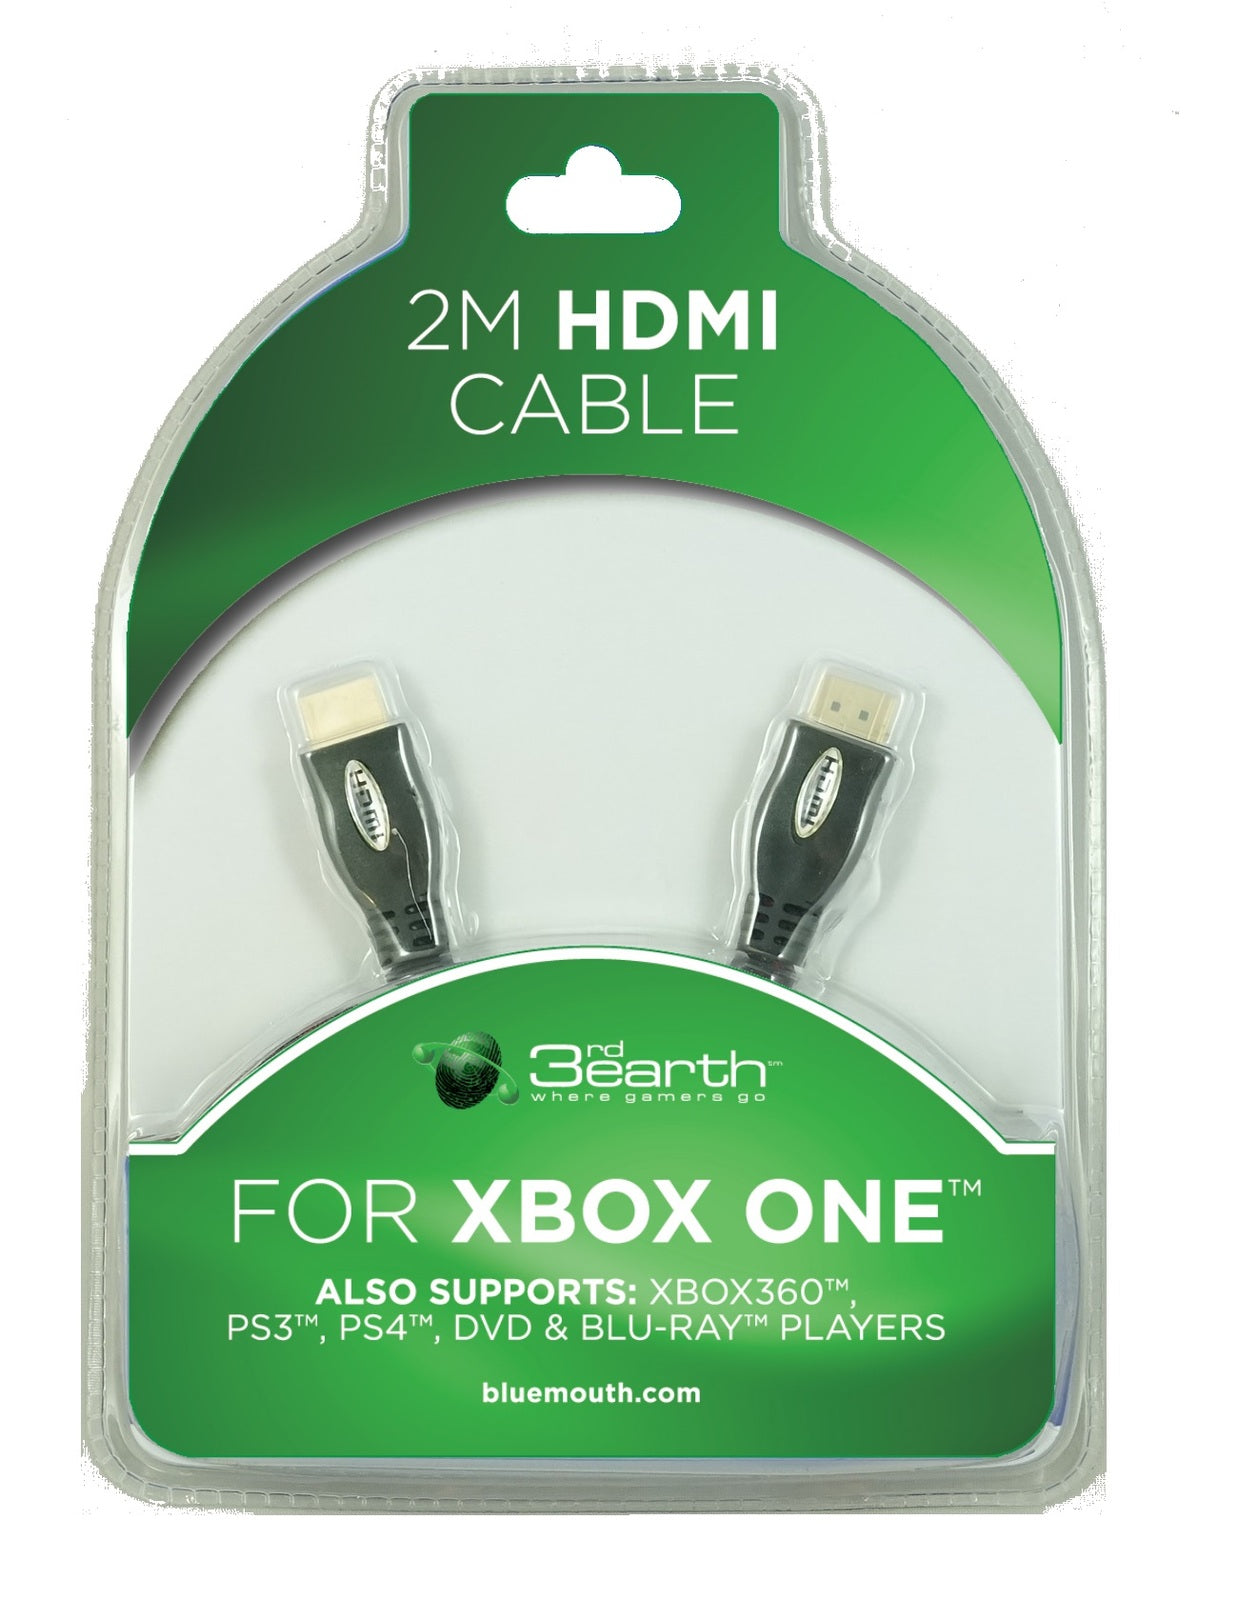 Xbox HDMI Cable for 2m - Xbox One